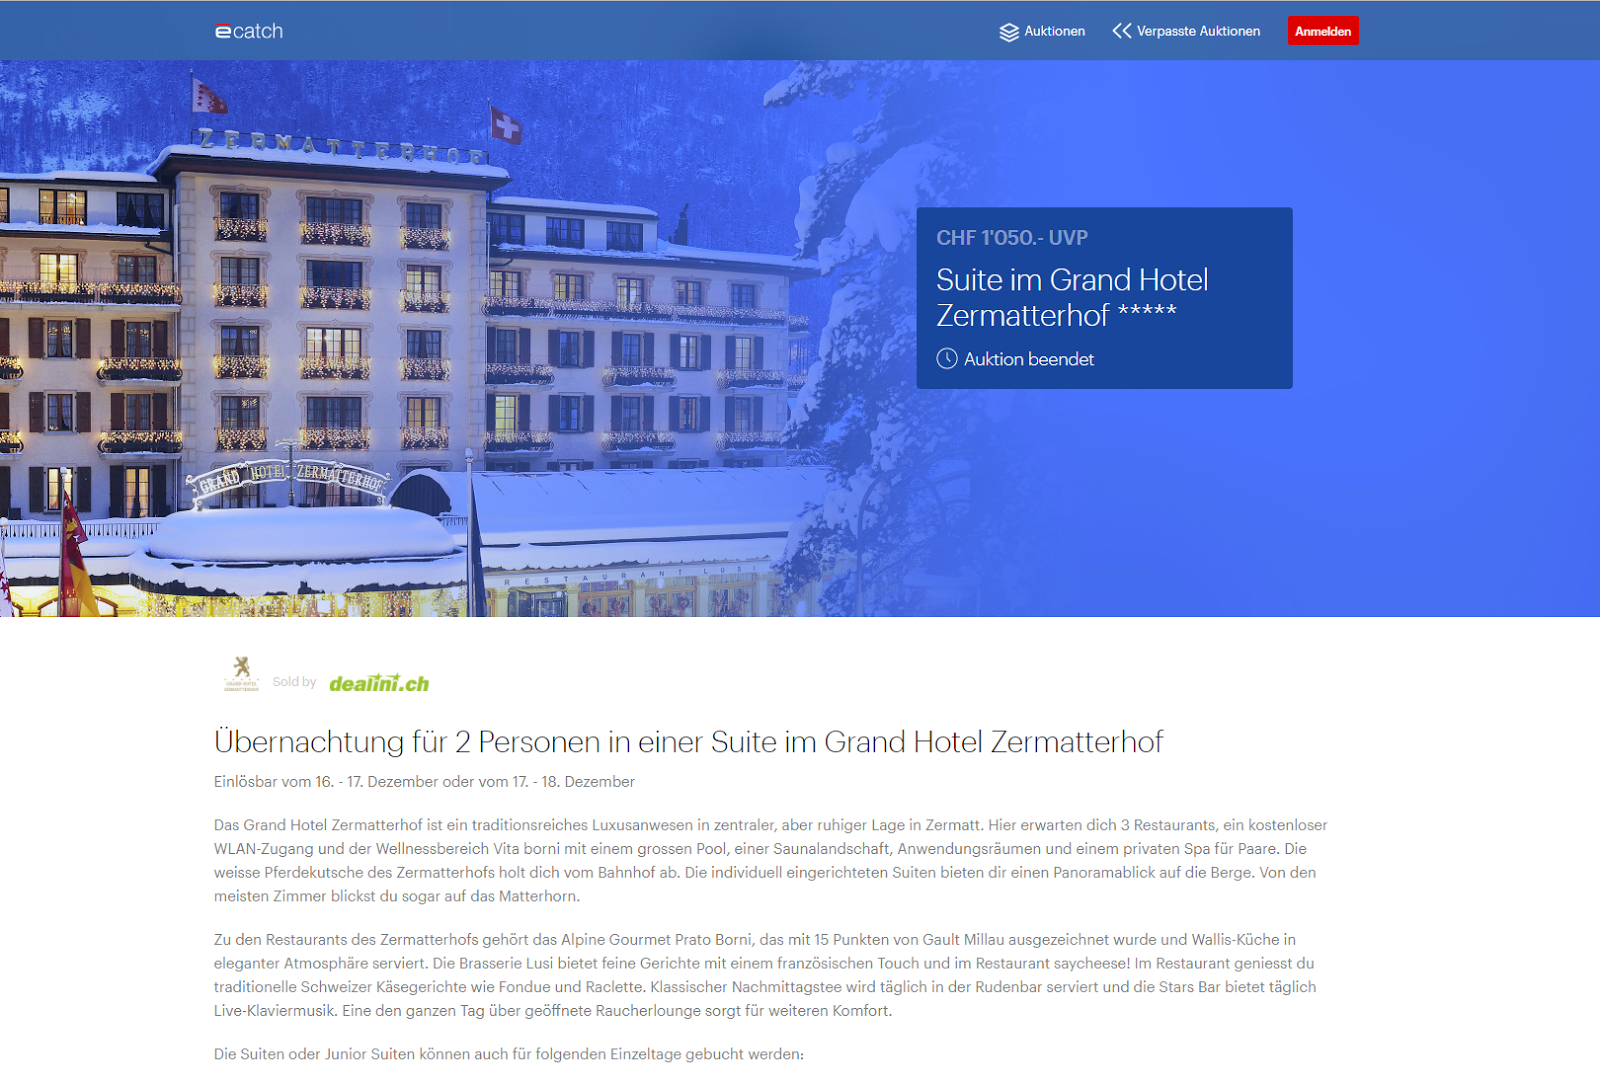 Auctions-based market research site - Swiss ecommerce project - Dealini - Case Study